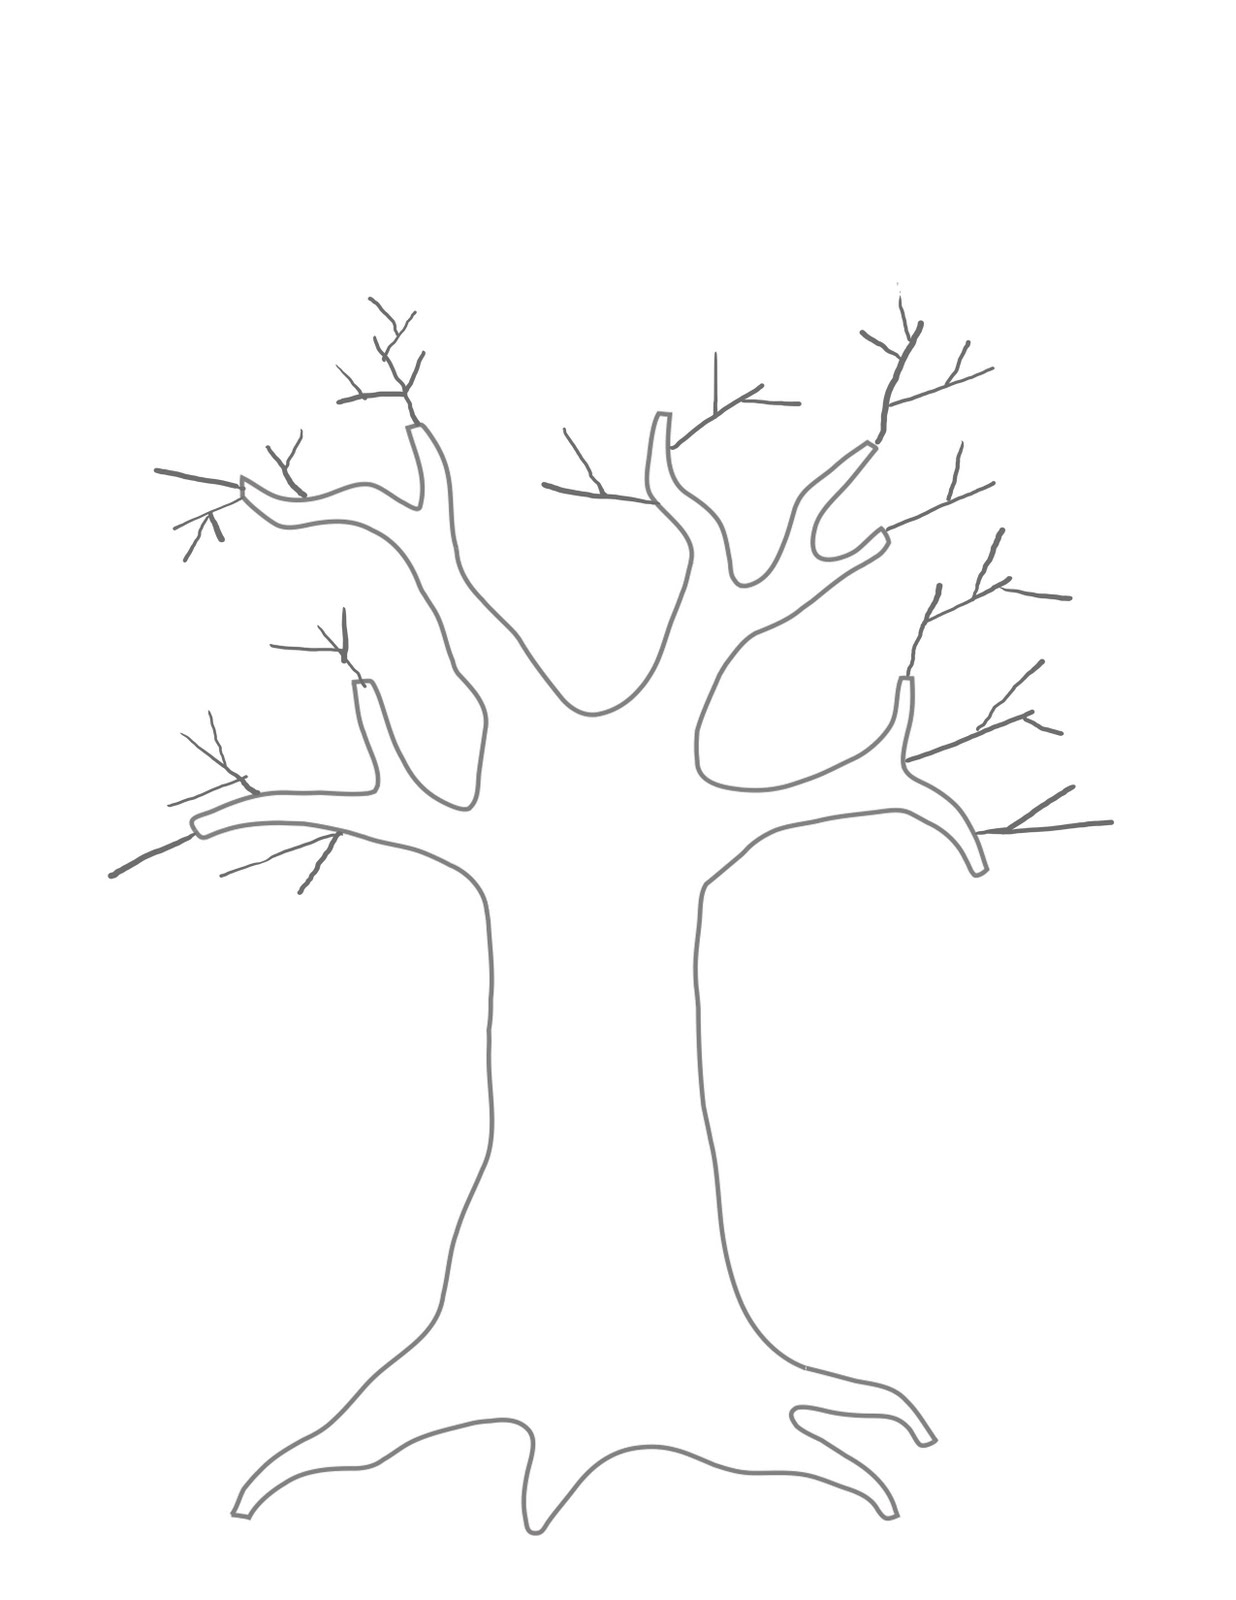 Jbs inspiration paper and ink kids crafts for Friendship tree template